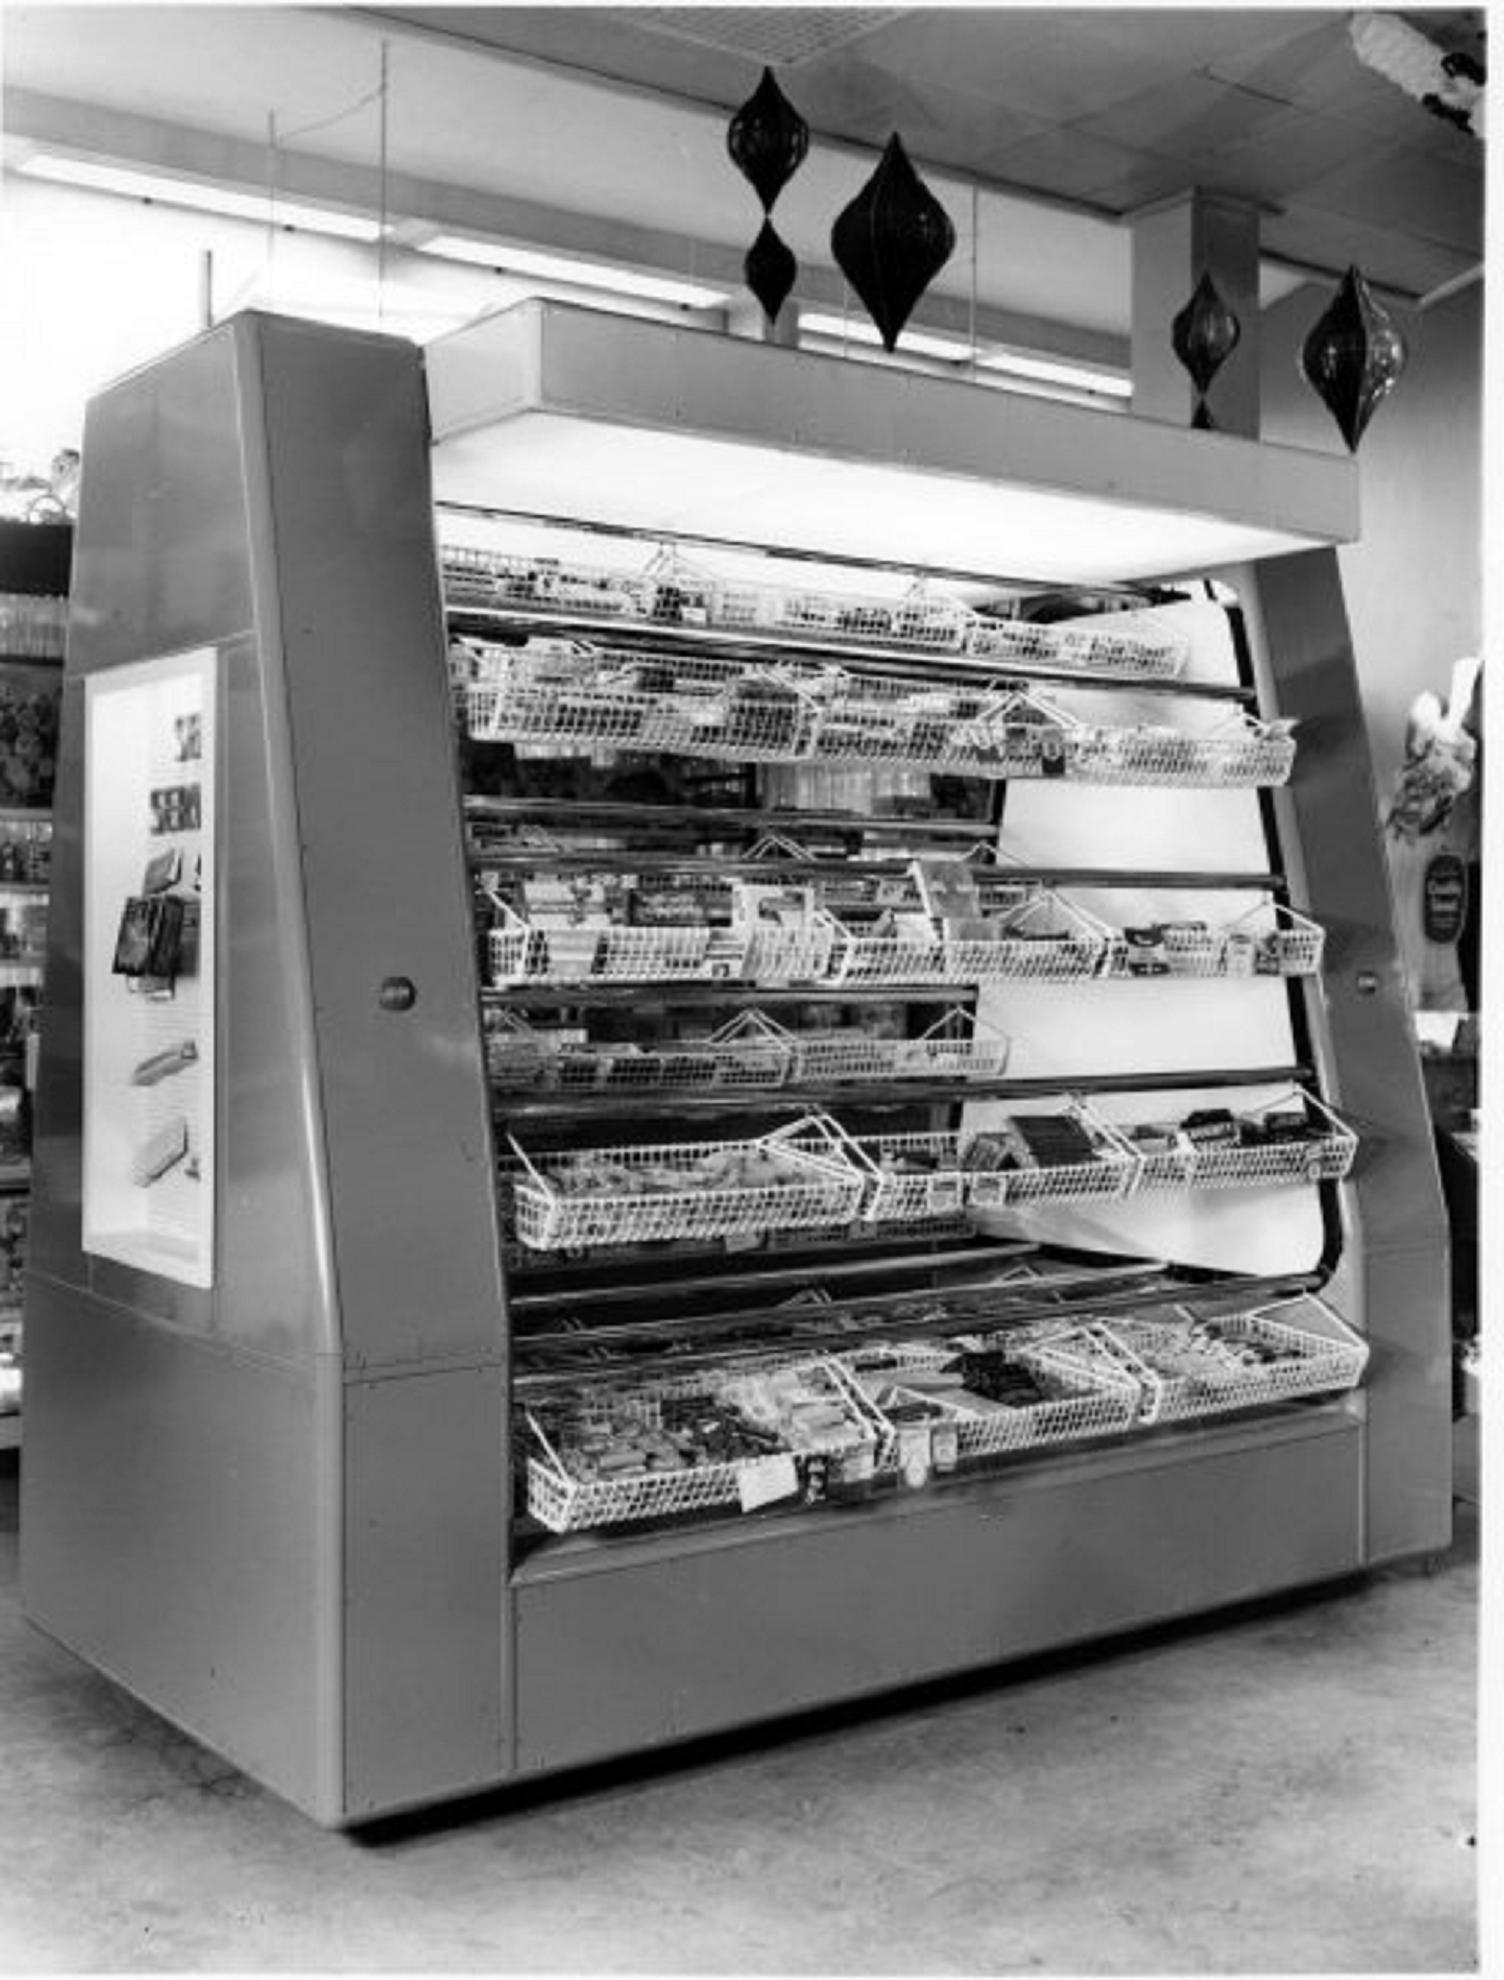 Pick and mix vending machines were developed in Wycombe factory